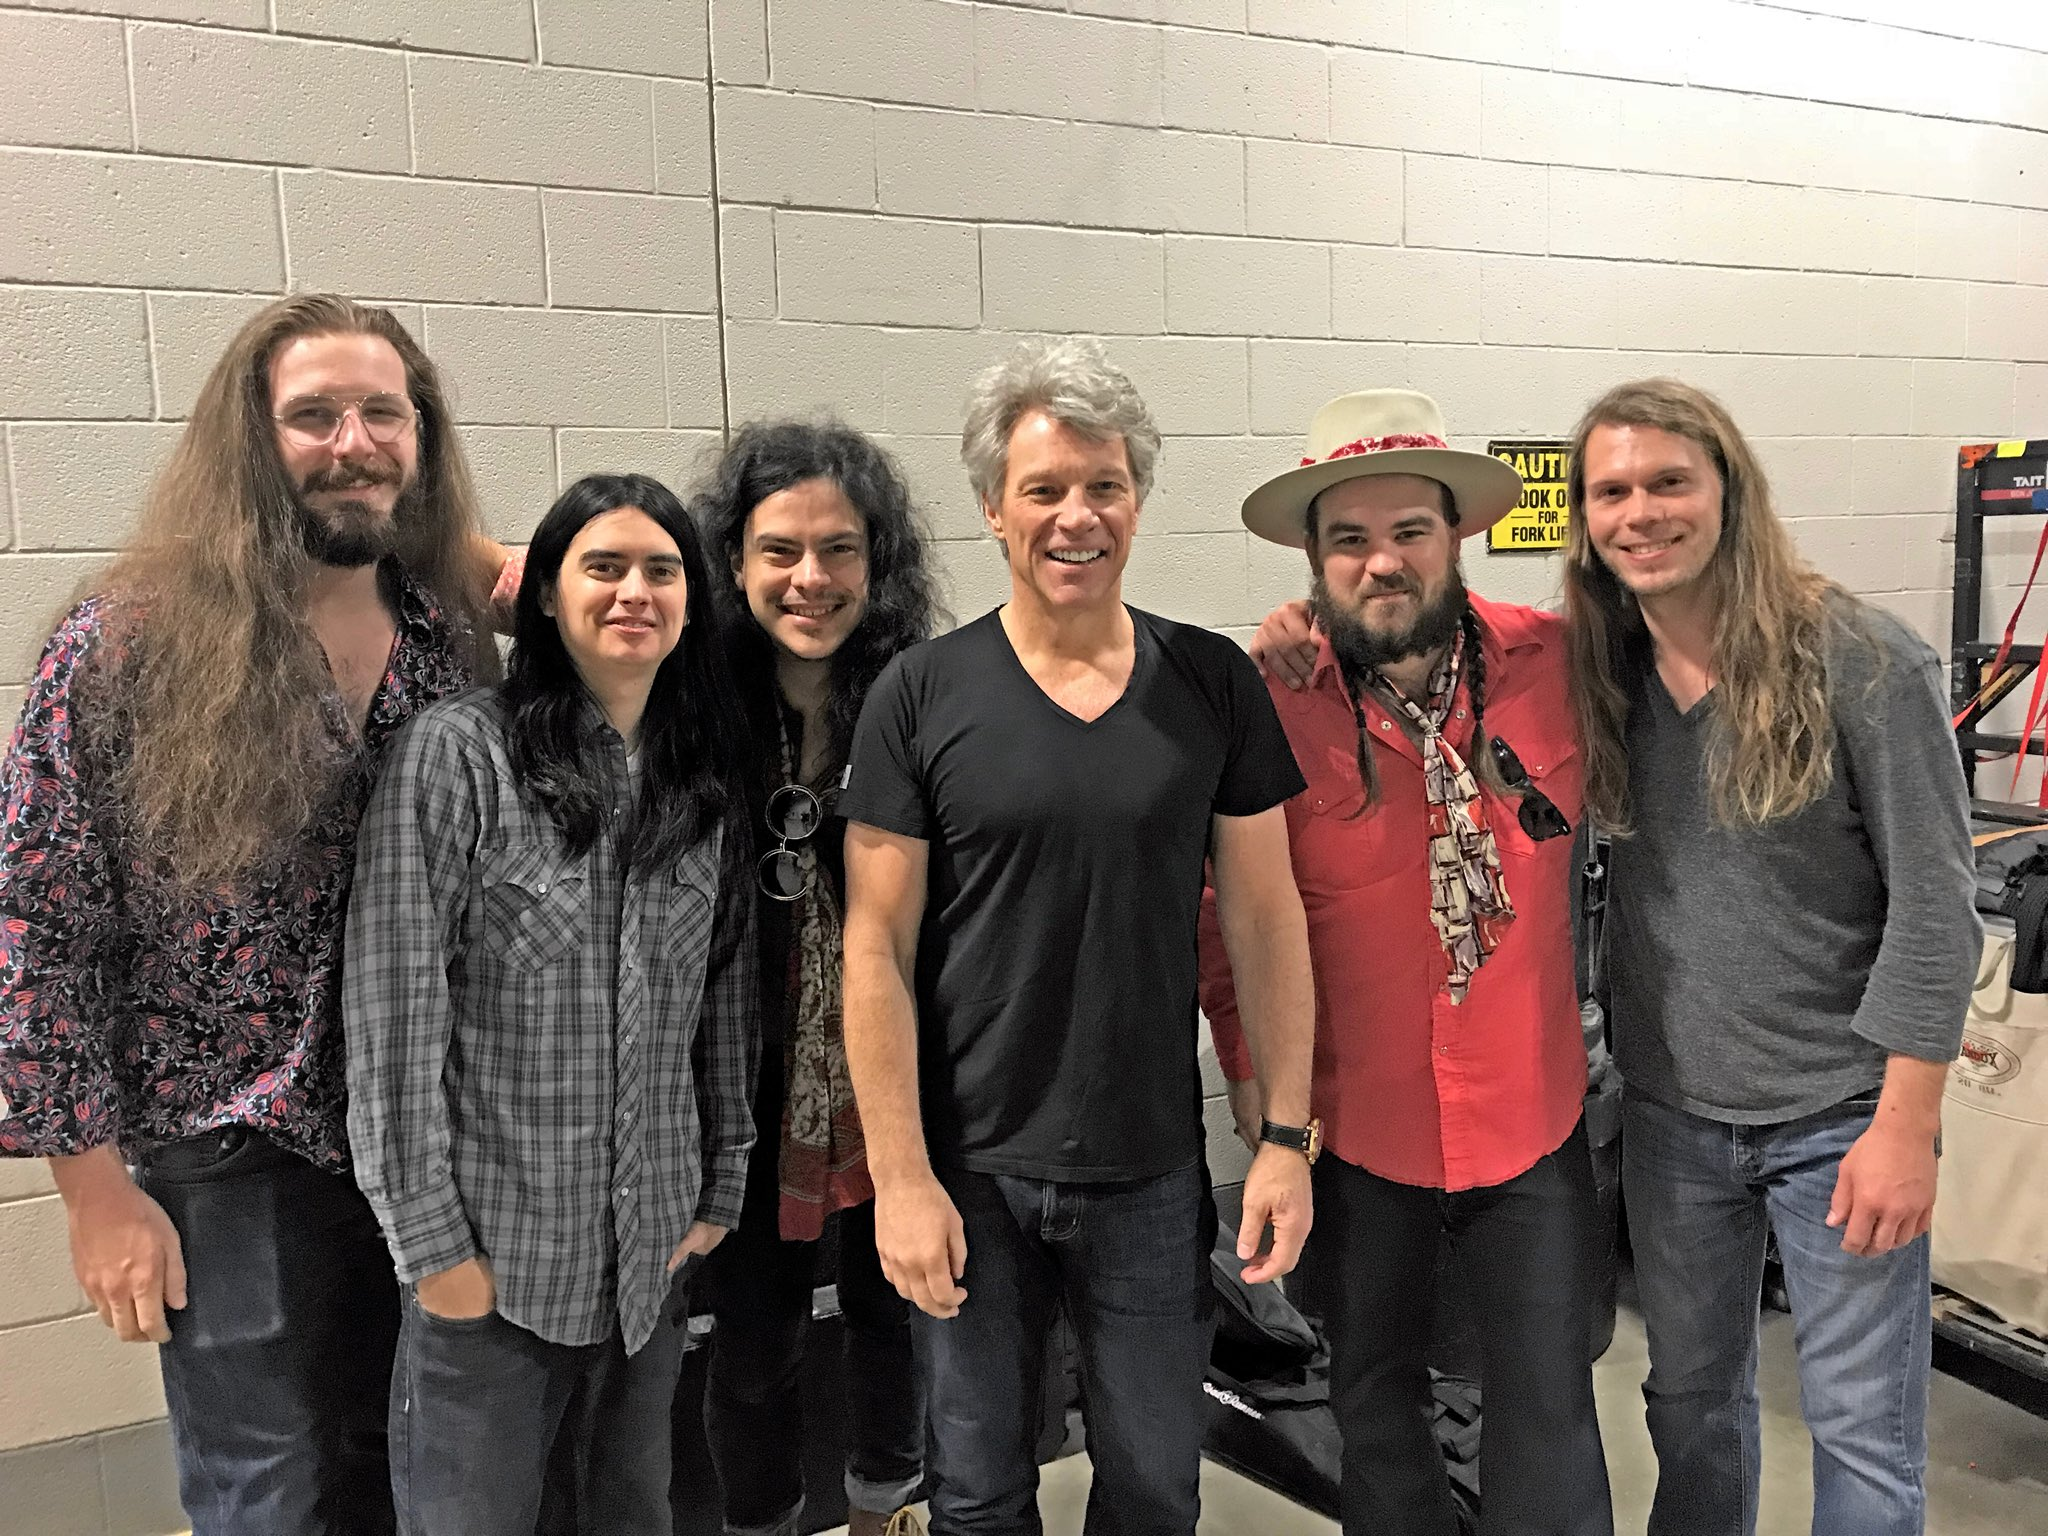 We had a great night, Little Rock! JBJ with opening act, @deFranceMusic + setlist �� #THINFStour https://t.co/8gyNaraRQZ